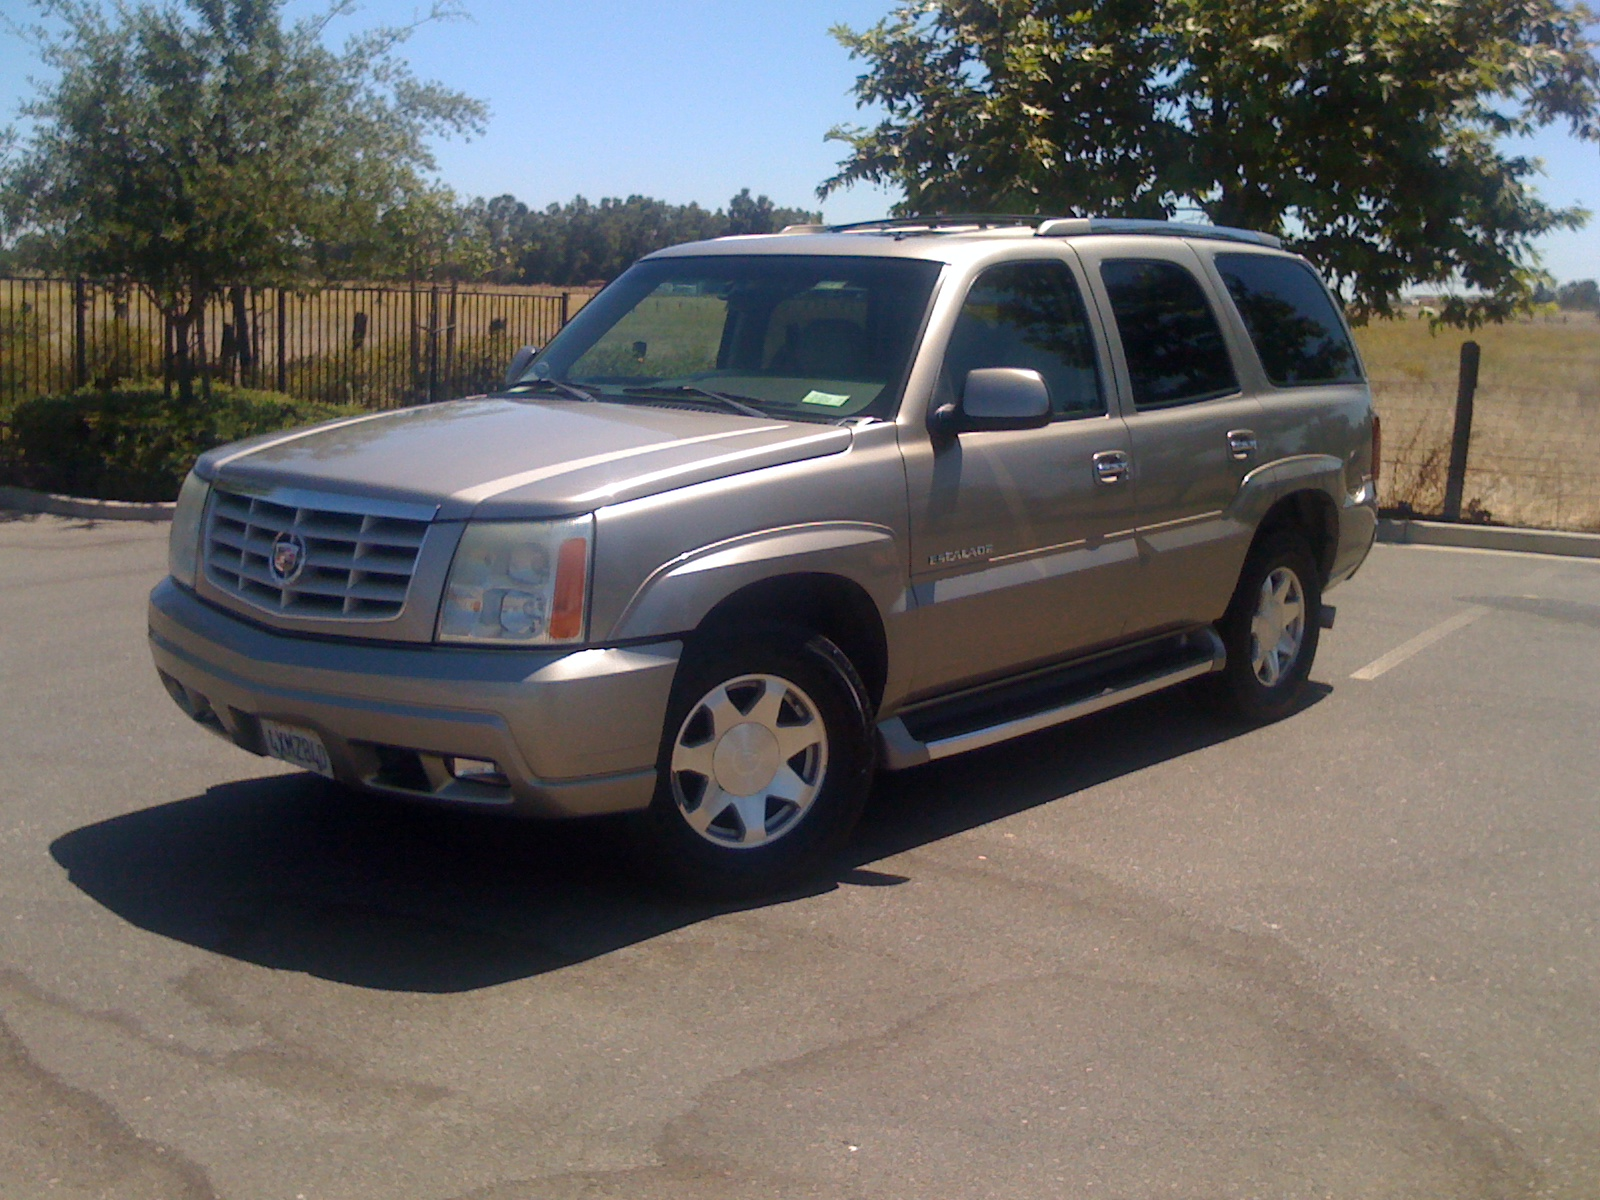 Cadillac Escalade 6.0i 2002 photo - 6